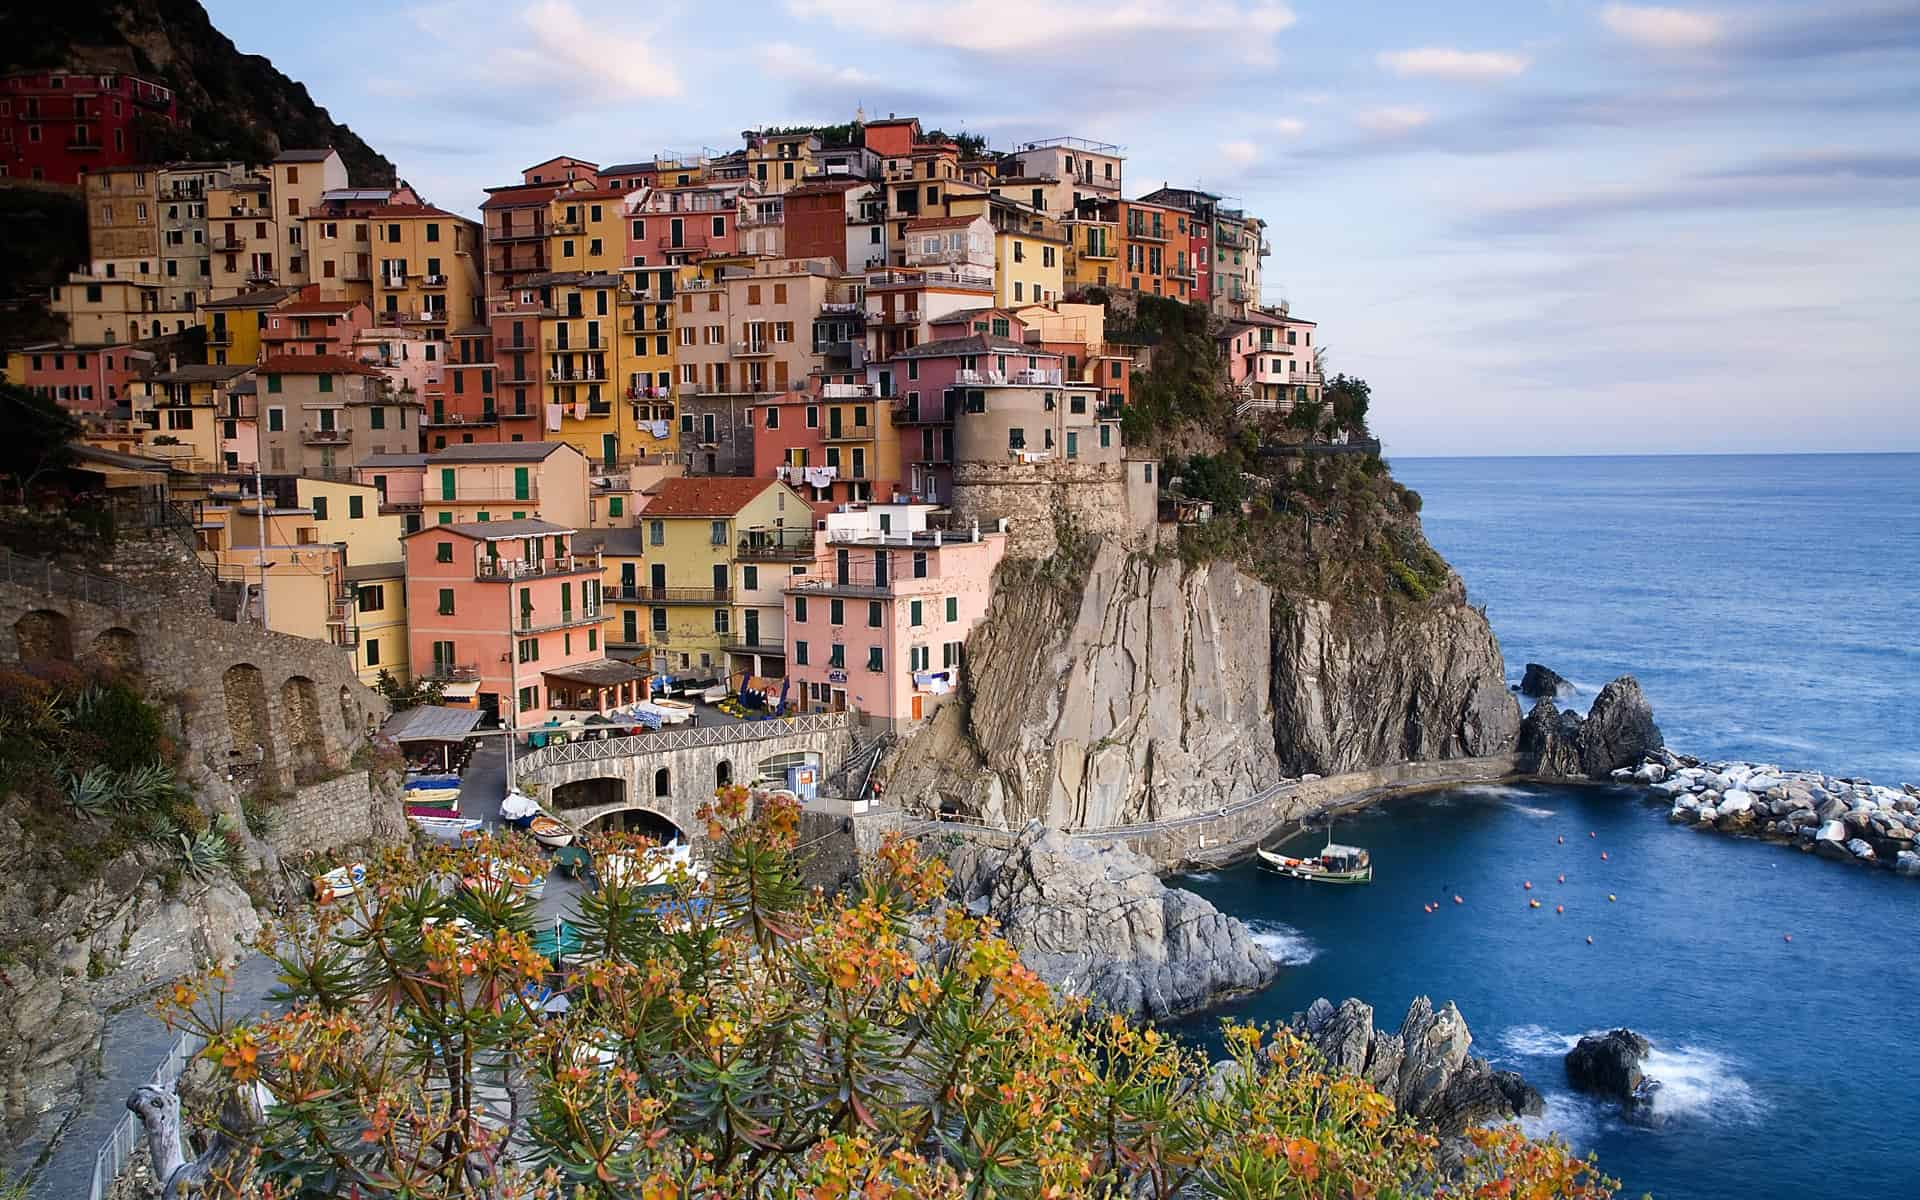 Plan an independent custom tour of Italy with accommodation, ideas and transport information